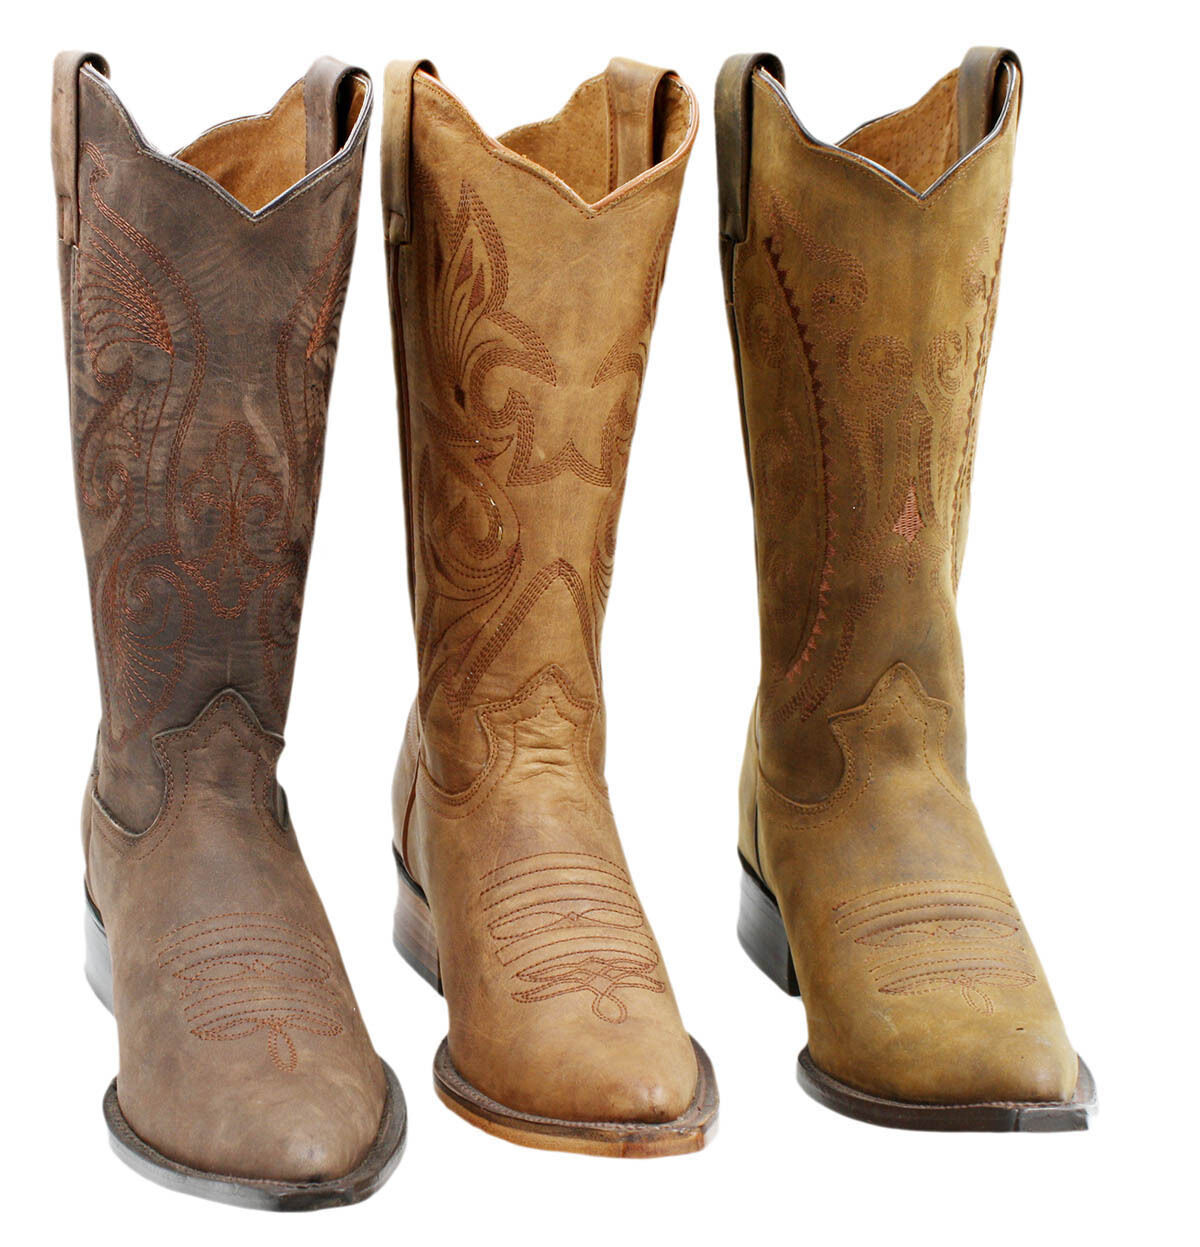 MEN'S GENUINE LEATHER WESTERN STYLE COWBOY BOOTS Style 501